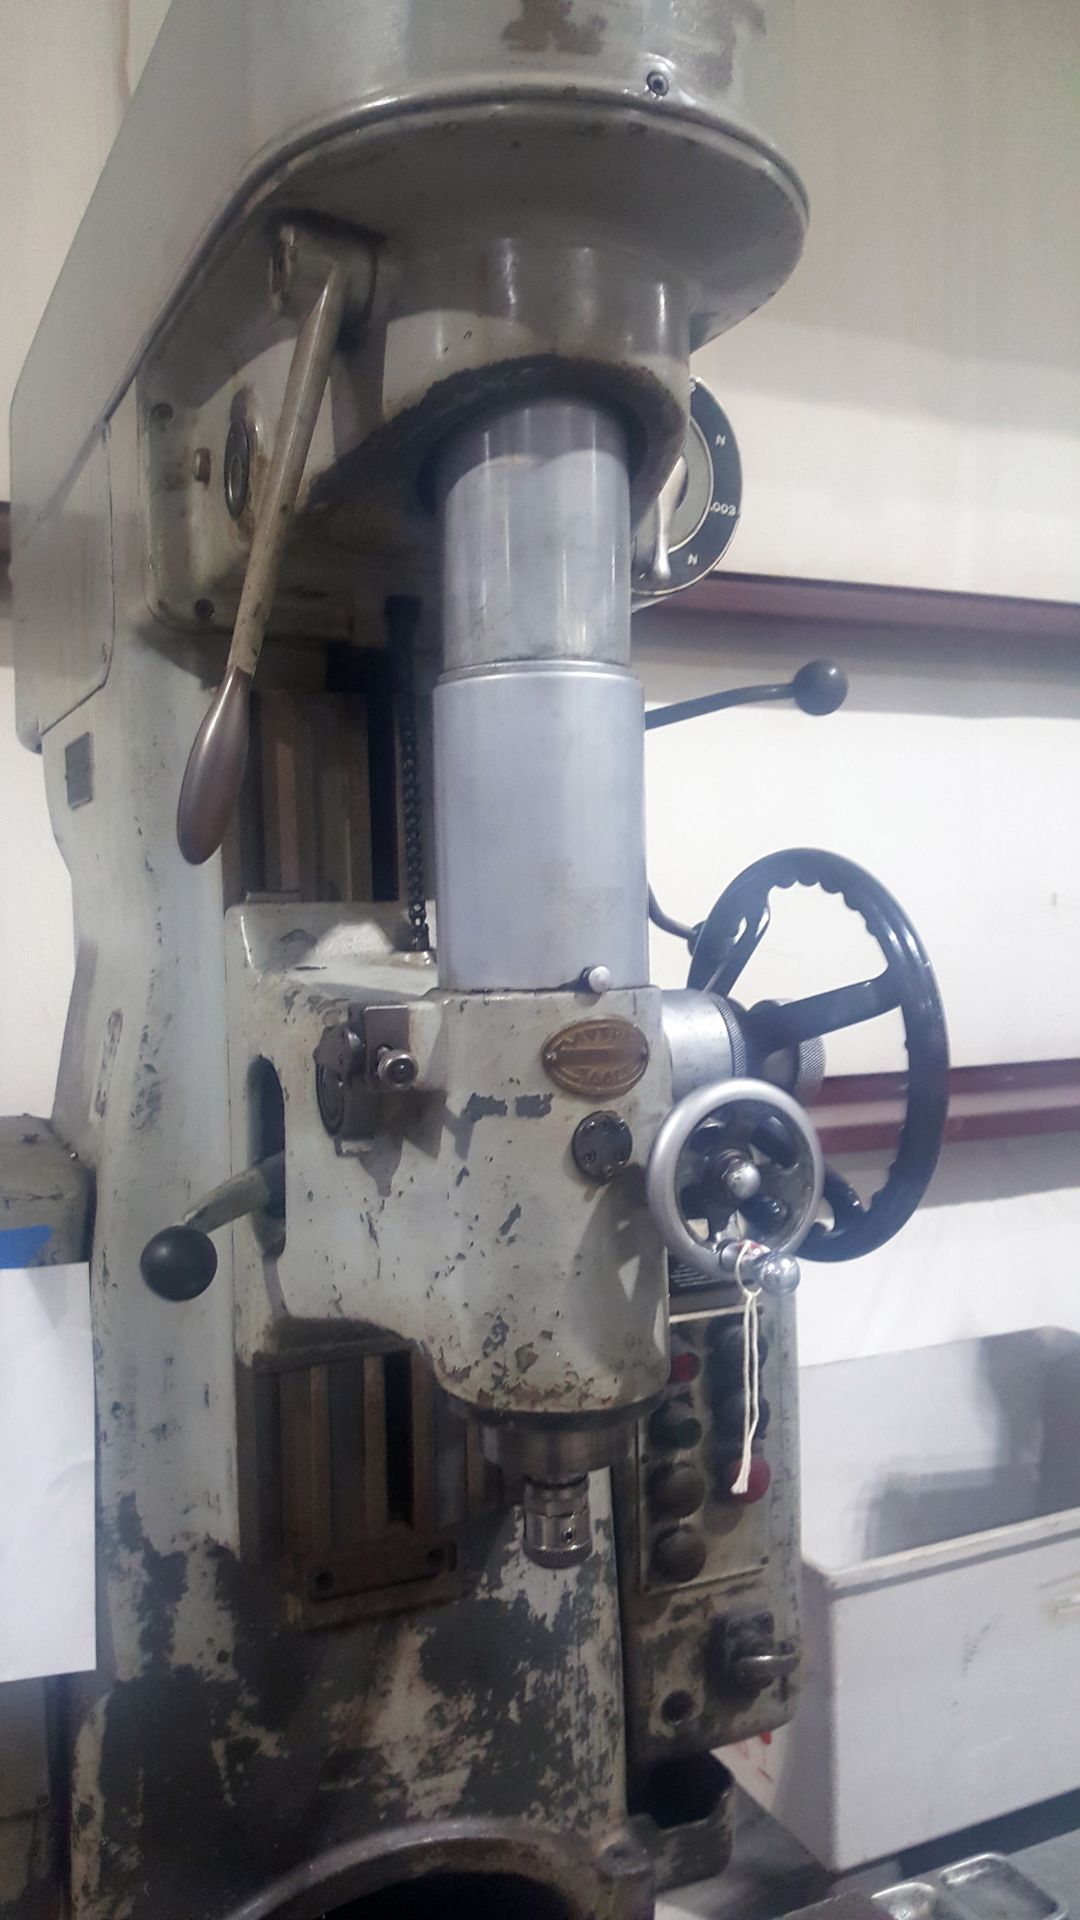 Moore # 2 Jig Boring Machine, S/N 5300 - Image 3 of 5